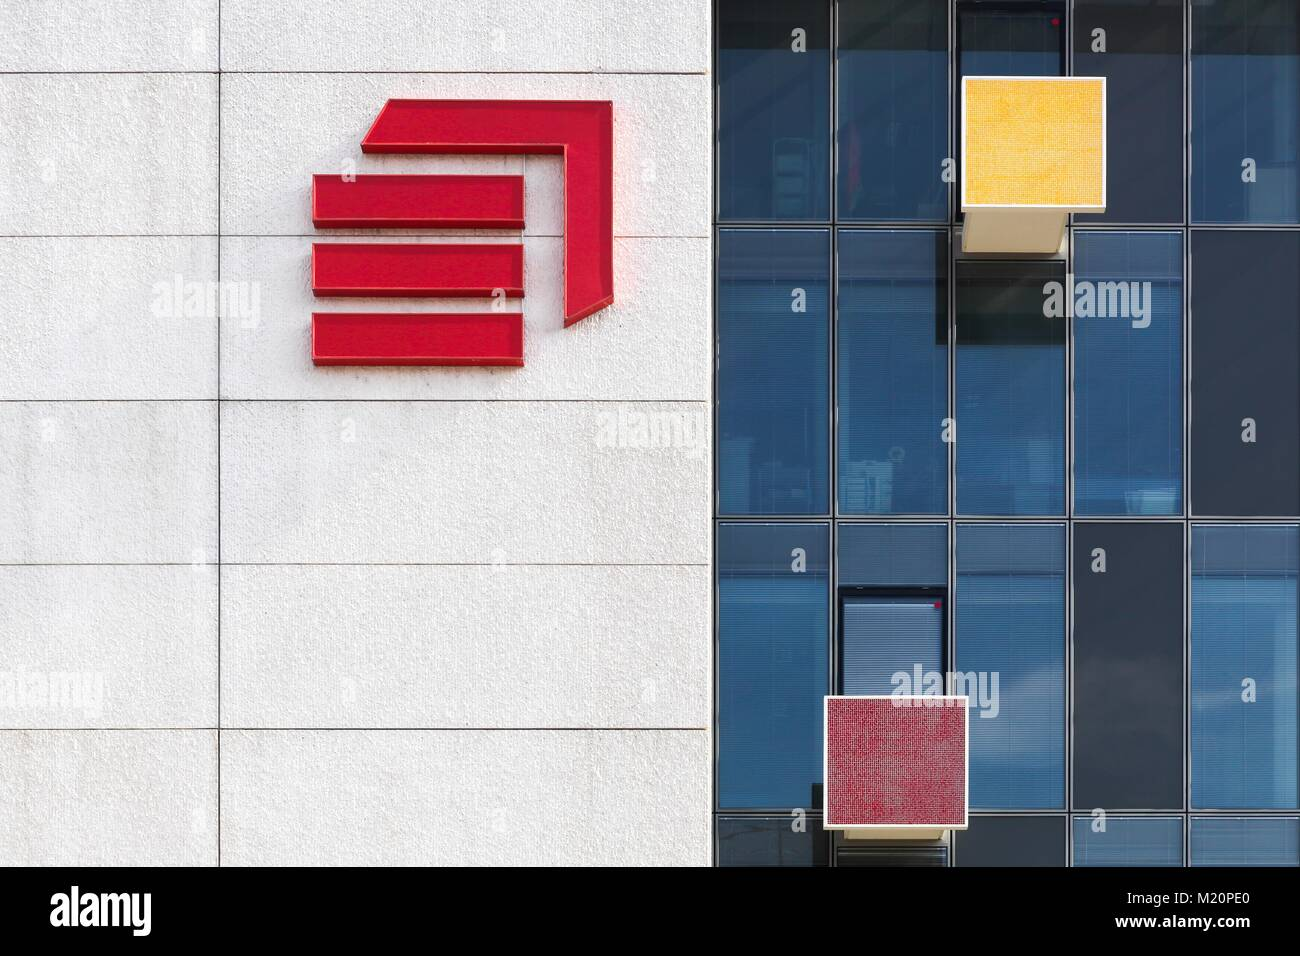 Lyon, France  March 15, 2017: Eiffage office building with the logo of the company on a wall. Eiffage is a French Stock Photo